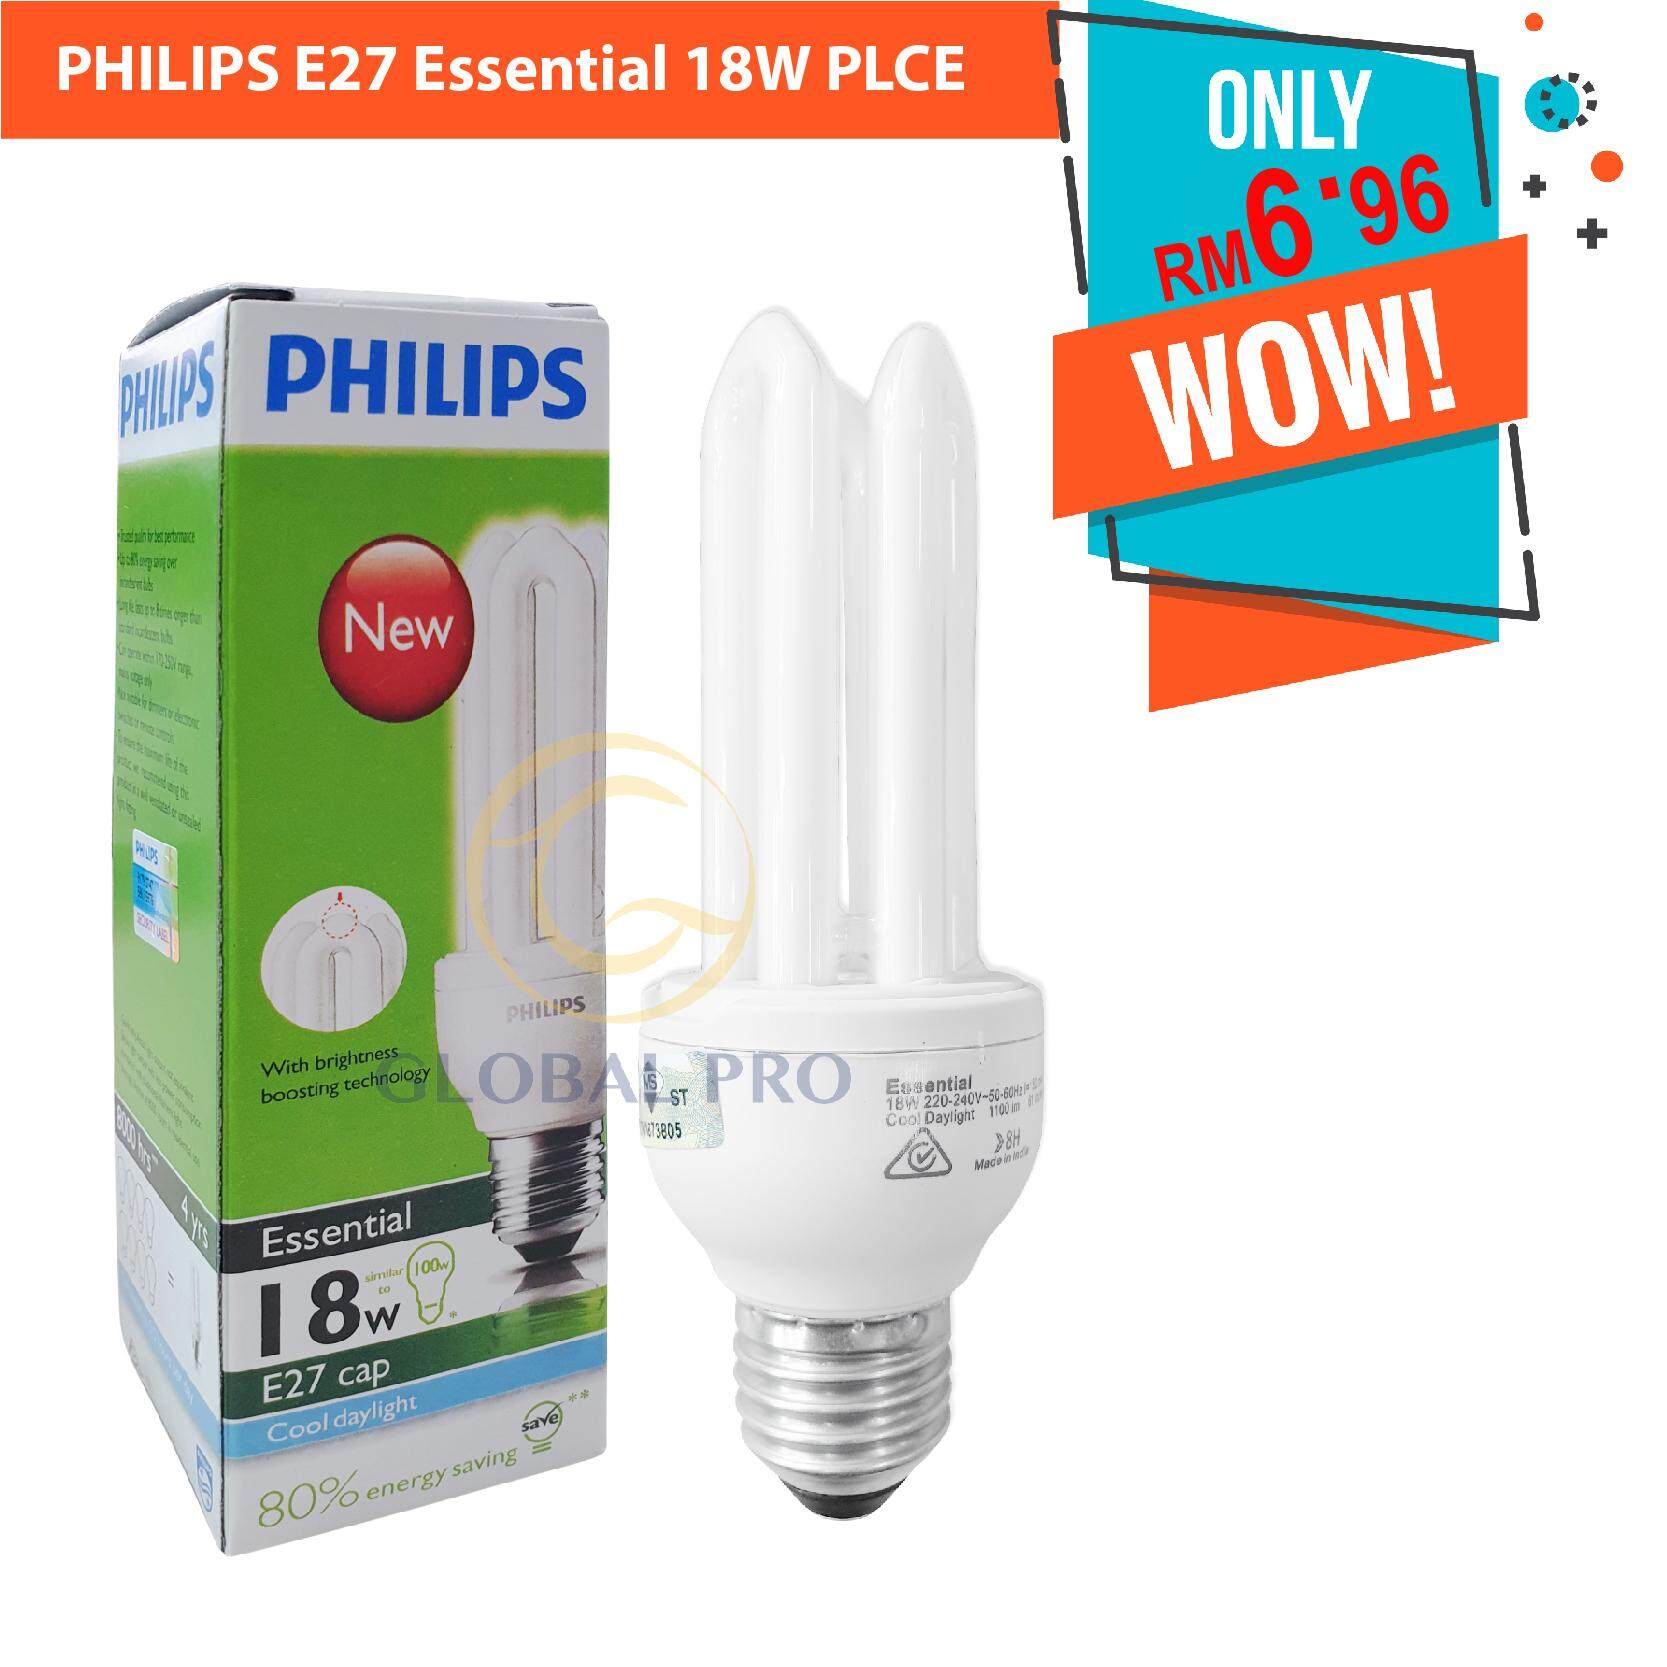 Philips Softone Flame Philips Home Light Bulbs Price In Malaysia Best Philips Home